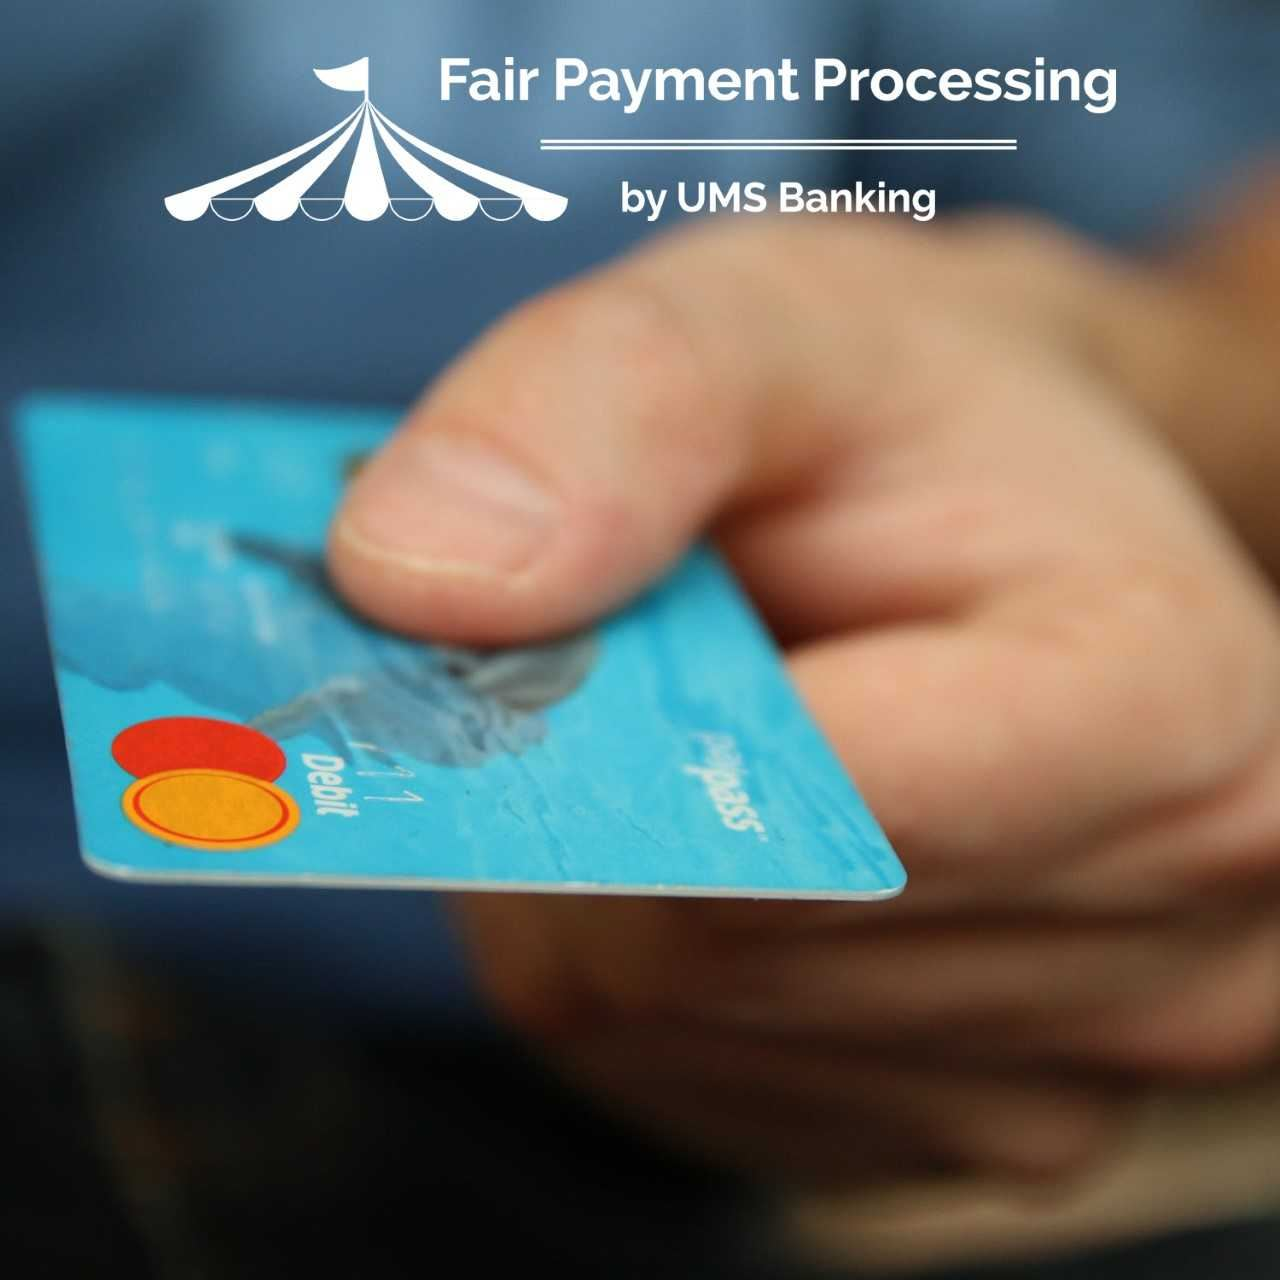 Payment Strategies for Fairs